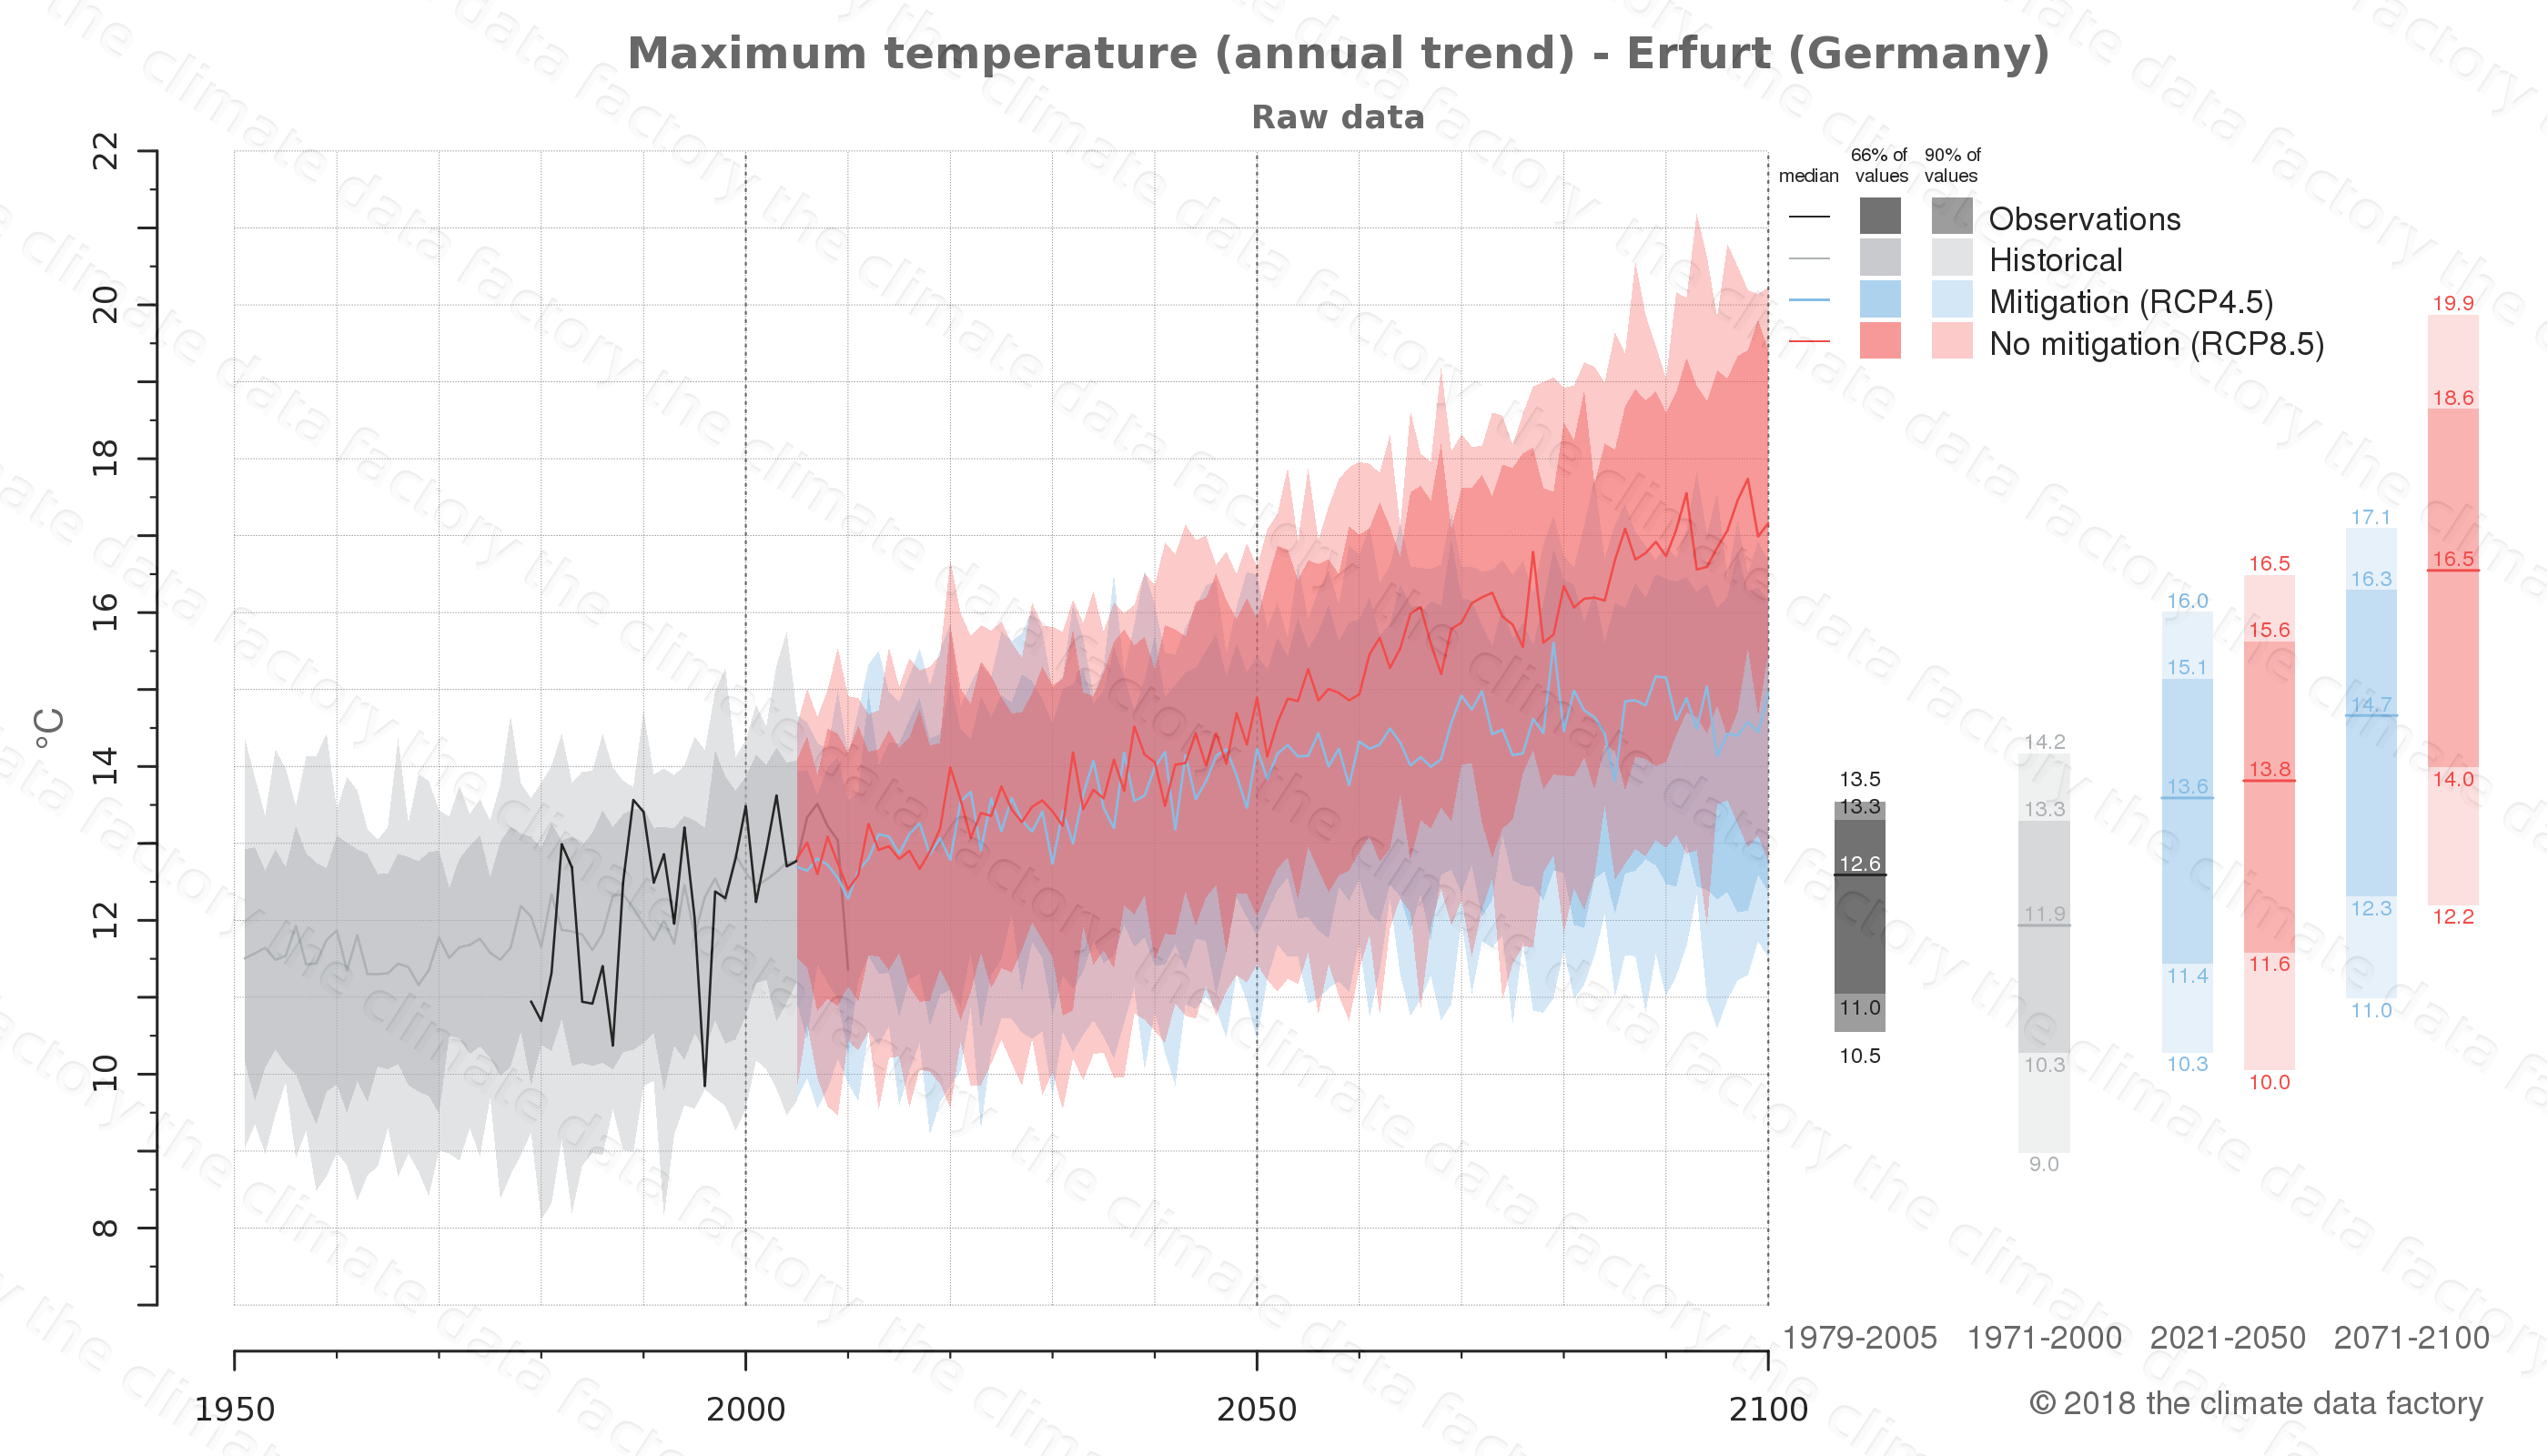 climate change data policy adaptation climate graph city data maximum-temperature erfurt germany